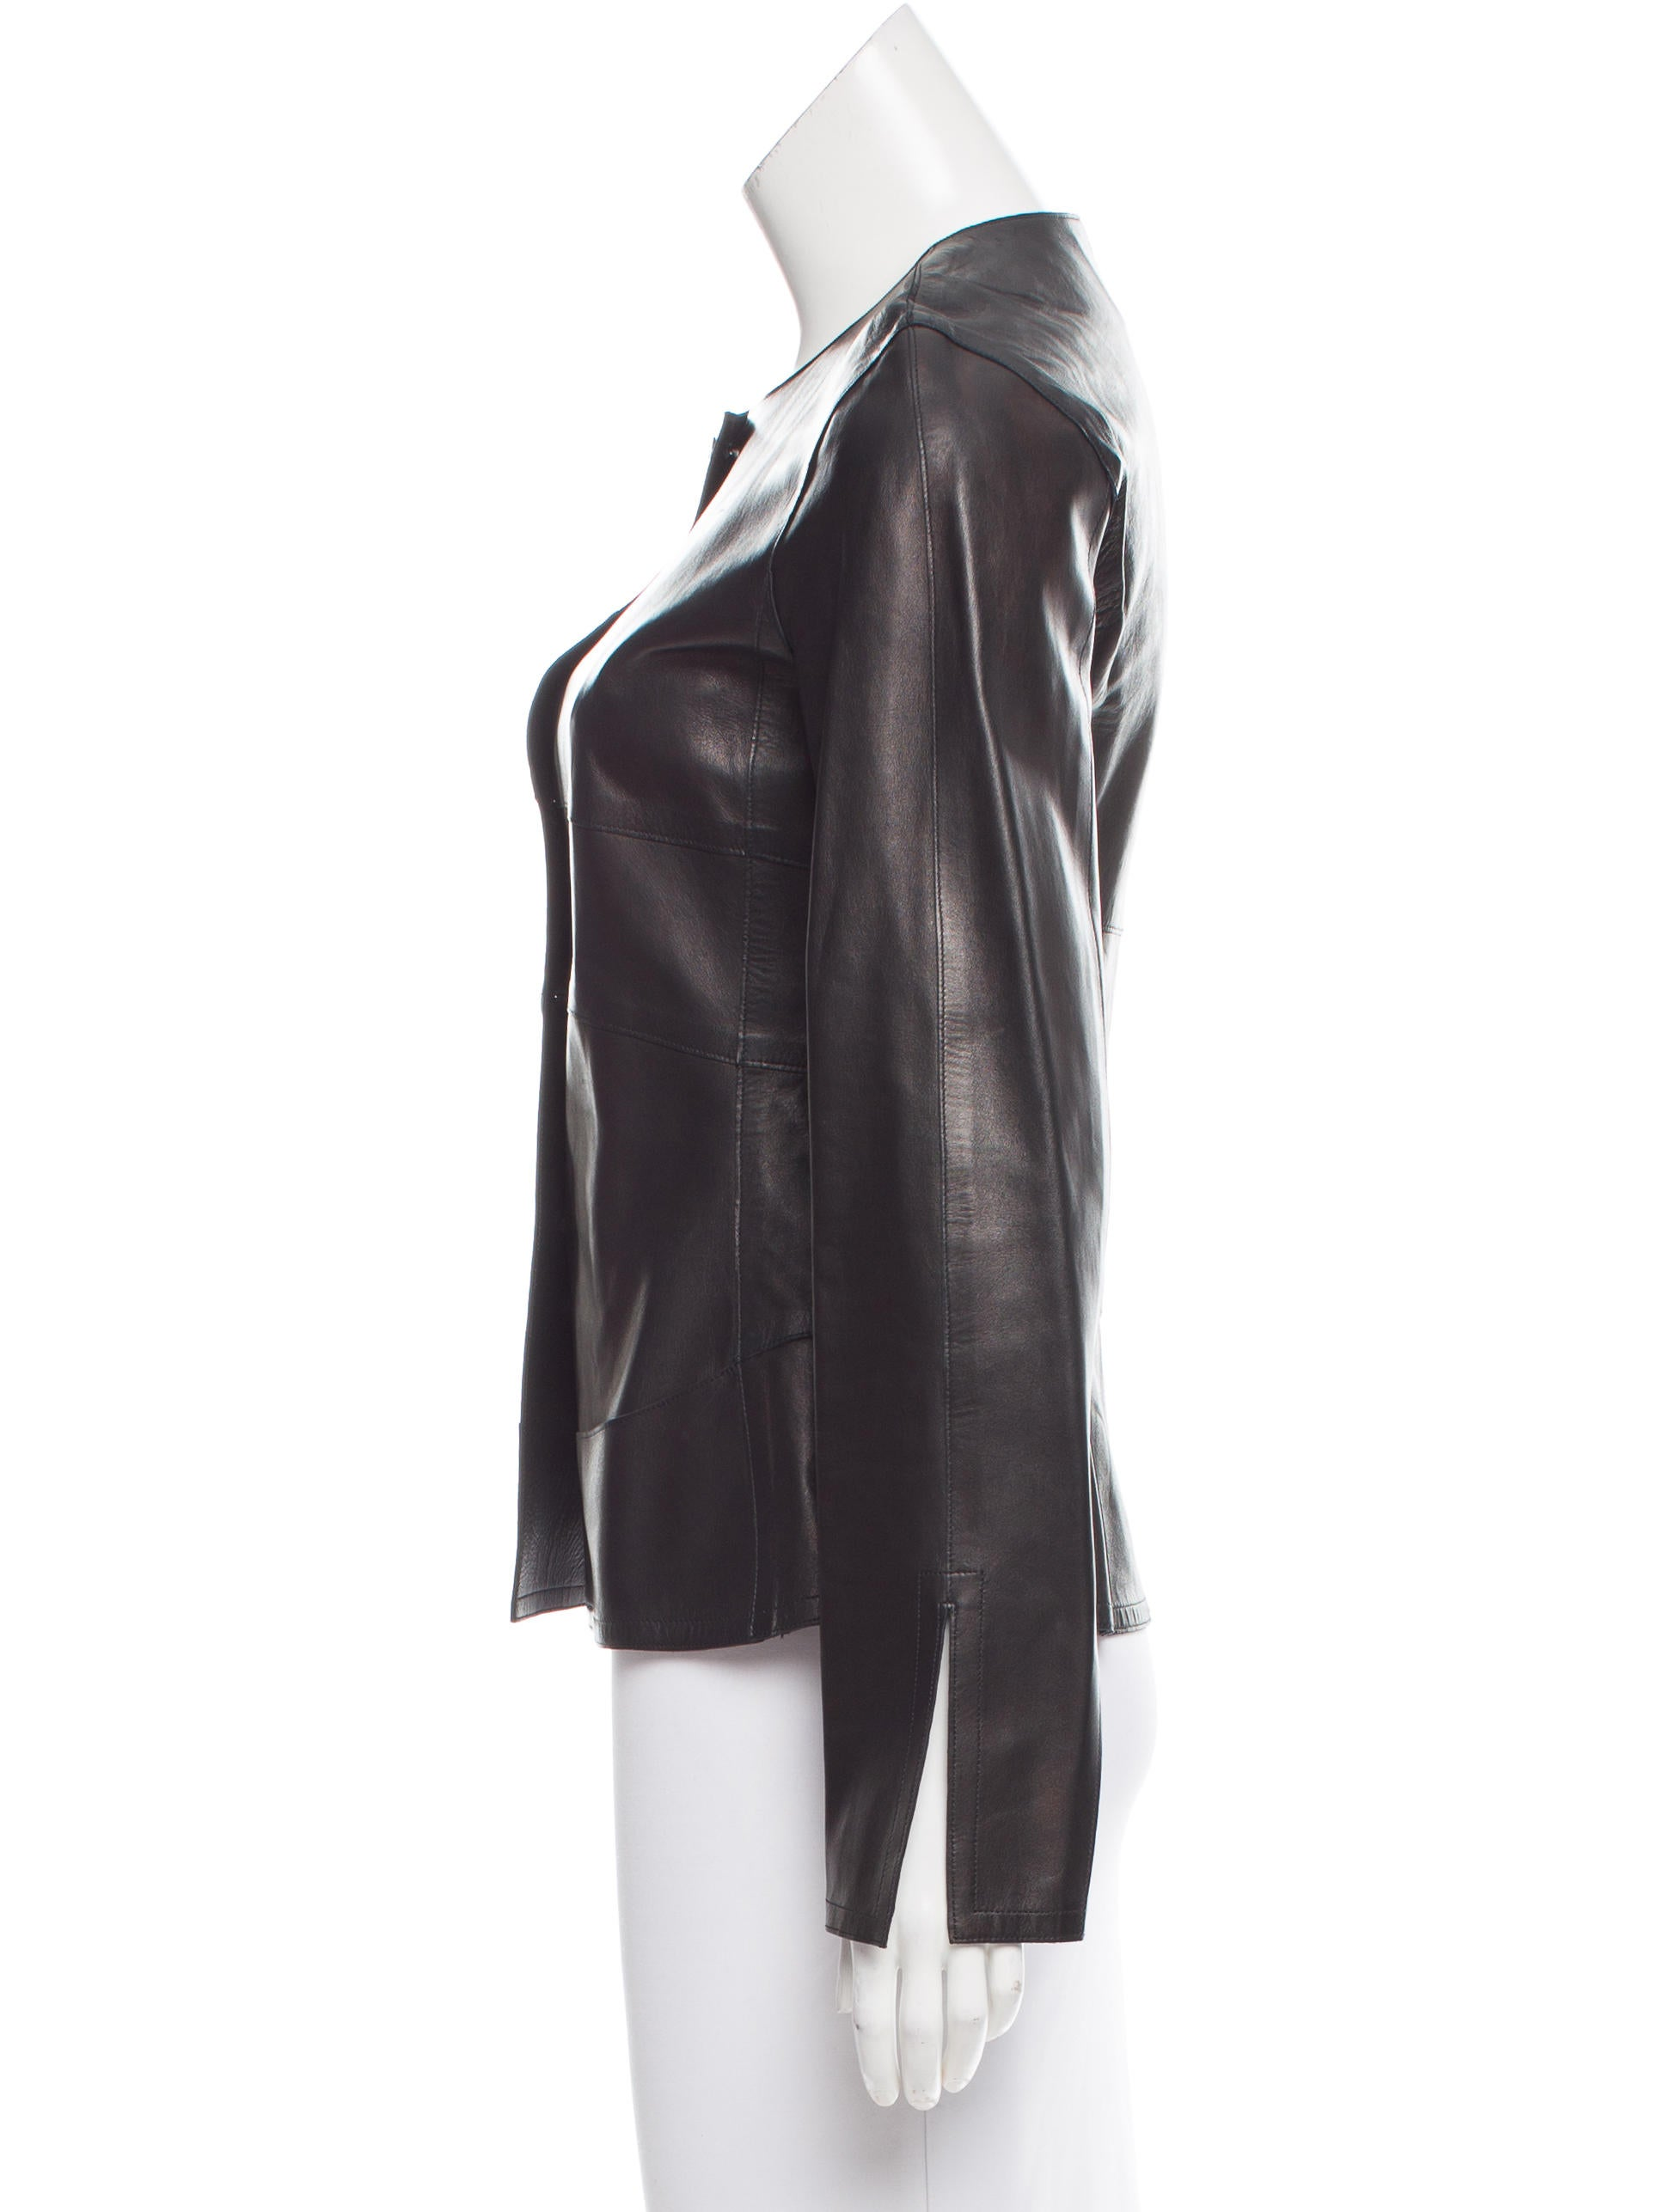 Chanel Button-Up Leather Jacket - Clothing - CHA186185 ...